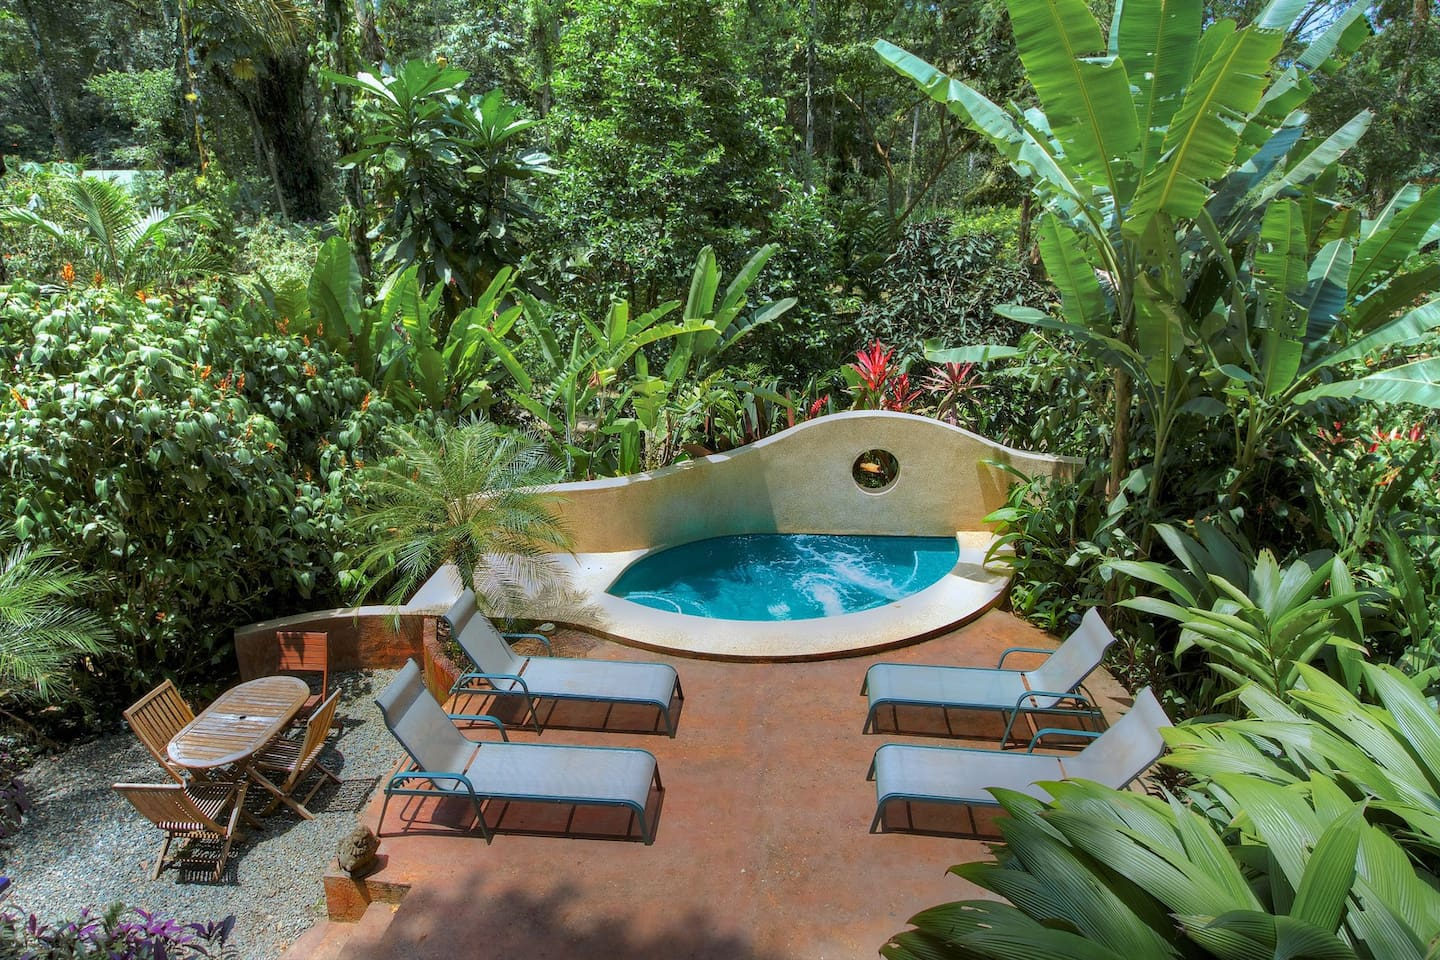 Lie back in your private plunge pool while the barbecue cooks dinner: Barefoot Luxury!